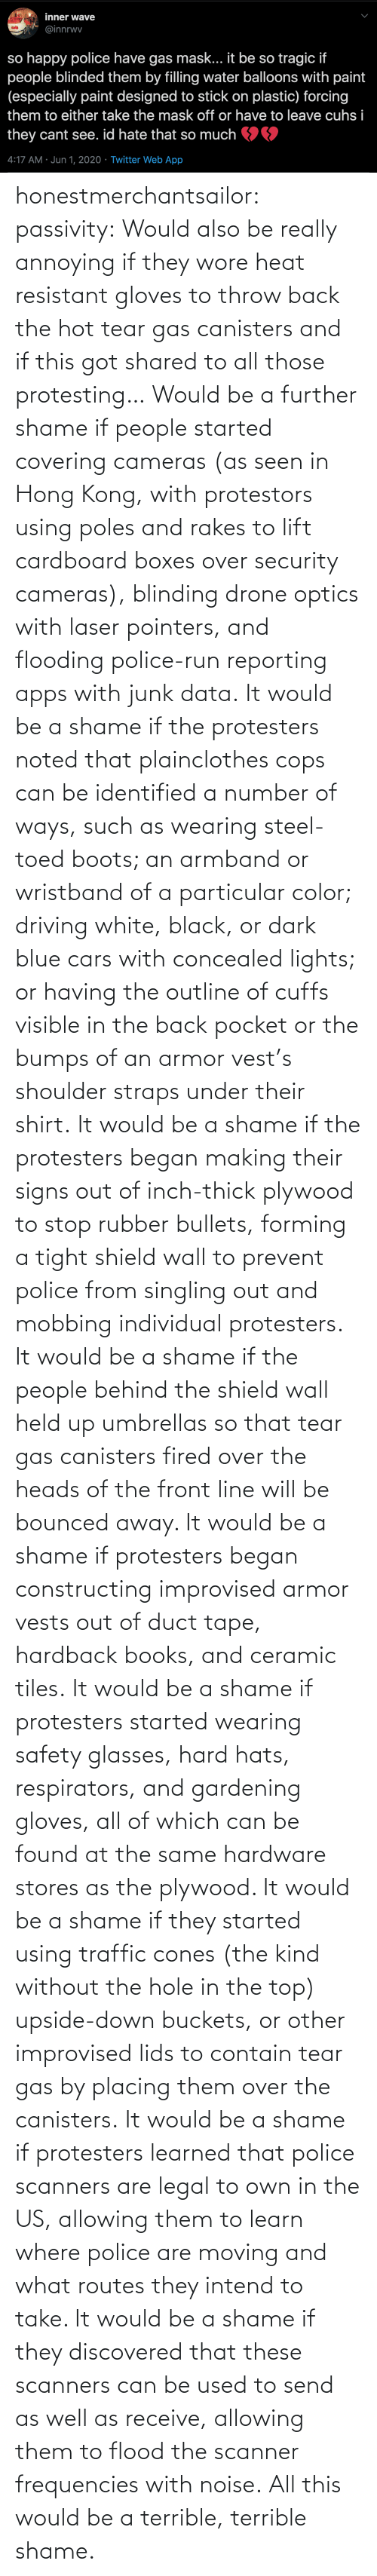 Police: honestmerchantsailor: passivity: Would also be really annoying if they wore heat resistant gloves to throw back the hot tear gas canisters and if this got shared to all those protesting… Would be a further shame if people started covering cameras (as seen in Hong Kong, with protestors using poles and rakes to lift cardboard boxes over security cameras), blinding drone optics with laser pointers, and flooding police-run reporting apps with junk data. It would be a shame if the protesters noted that plainclothes cops can be identified a number of ways, such as wearing steel-toed boots; an armband or wristband of a particular color; driving white, black, or dark blue cars with concealed lights; or having the outline of cuffs visible in the back pocket or the bumps of an armor vest's shoulder straps under their shirt. It would be a shame if the protesters began making their signs out of inch-thick plywood to stop rubber bullets, forming a tight shield wall to prevent police from singling out and mobbing individual protesters. It would be a shame if the people behind the shield wall held up umbrellas so that tear gas canisters fired over the heads of the front line will be bounced away. It would be a shame if protesters began constructing improvised armor vests out of duct tape, hardback books, and ceramic tiles. It would be a shame if protesters started wearing safety glasses, hard hats, respirators, and gardening gloves, all of which can be found at the same hardware stores as the plywood. It would be a shame if they started using traffic cones (the kind without the hole in the top) upside-down buckets, or other improvised lids to contain tear gas by placing them over the canisters. It would be a shame if protesters learned that police scanners are legal to own in the US, allowing them to learn where police are moving and what routes they intend to take. It would be a shame if they discovered that these scanners can be used to send as well as receive, allowing them to flood the scanner frequencies with noise. All this would be a terrible, terrible shame.